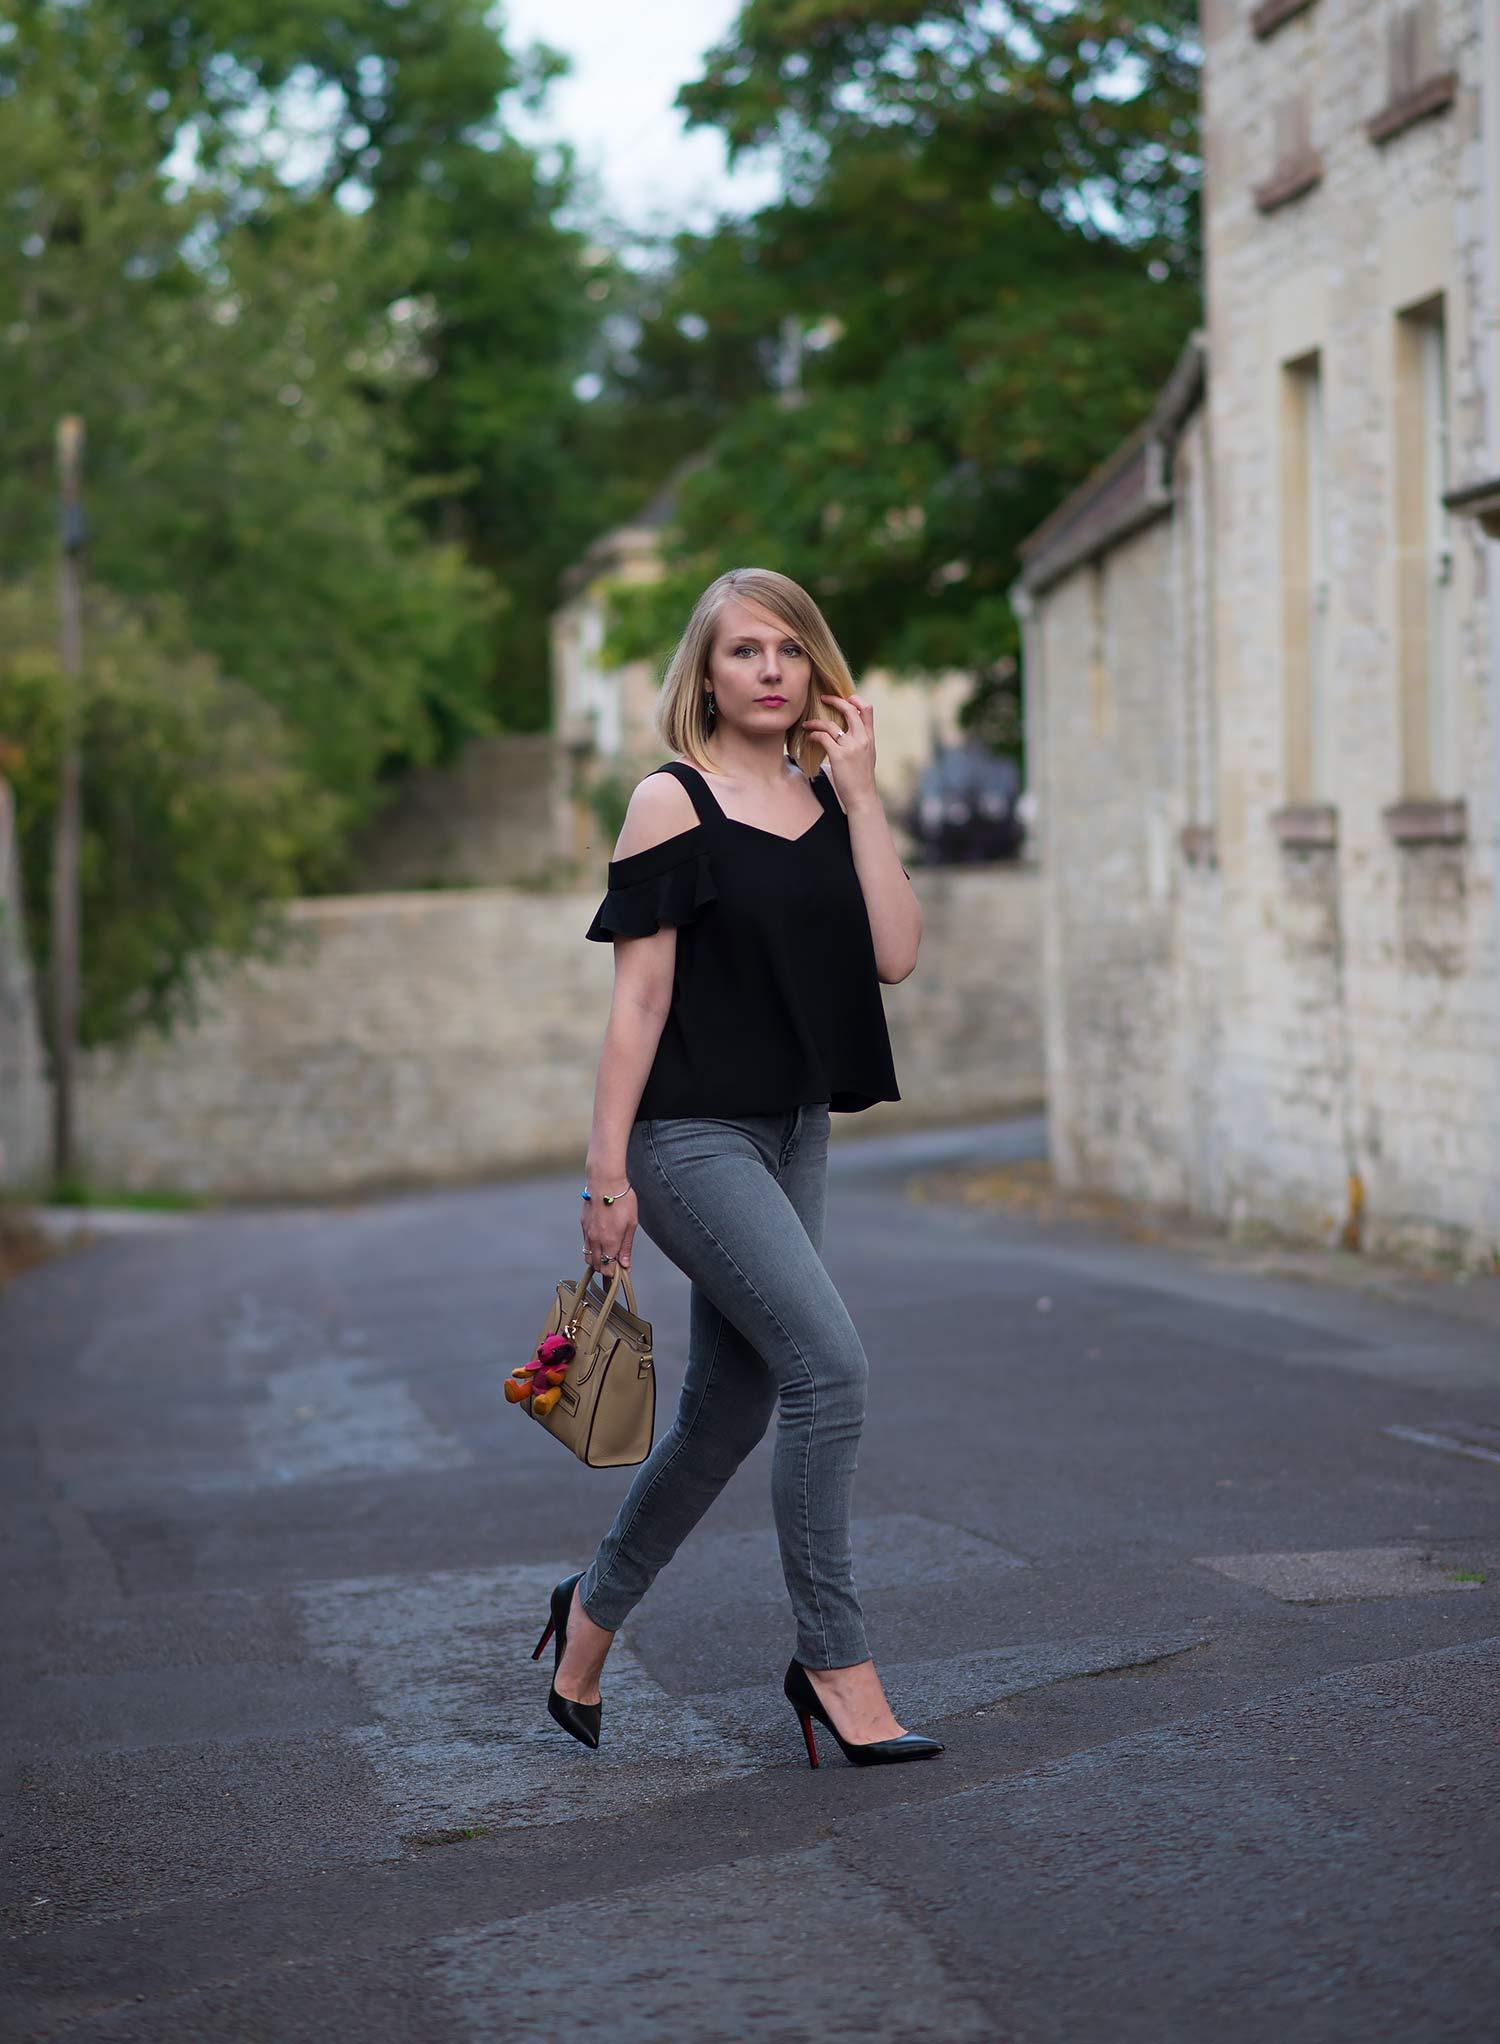 fashion-blogger-skinny-jeans-christian-louboutin-pigalle